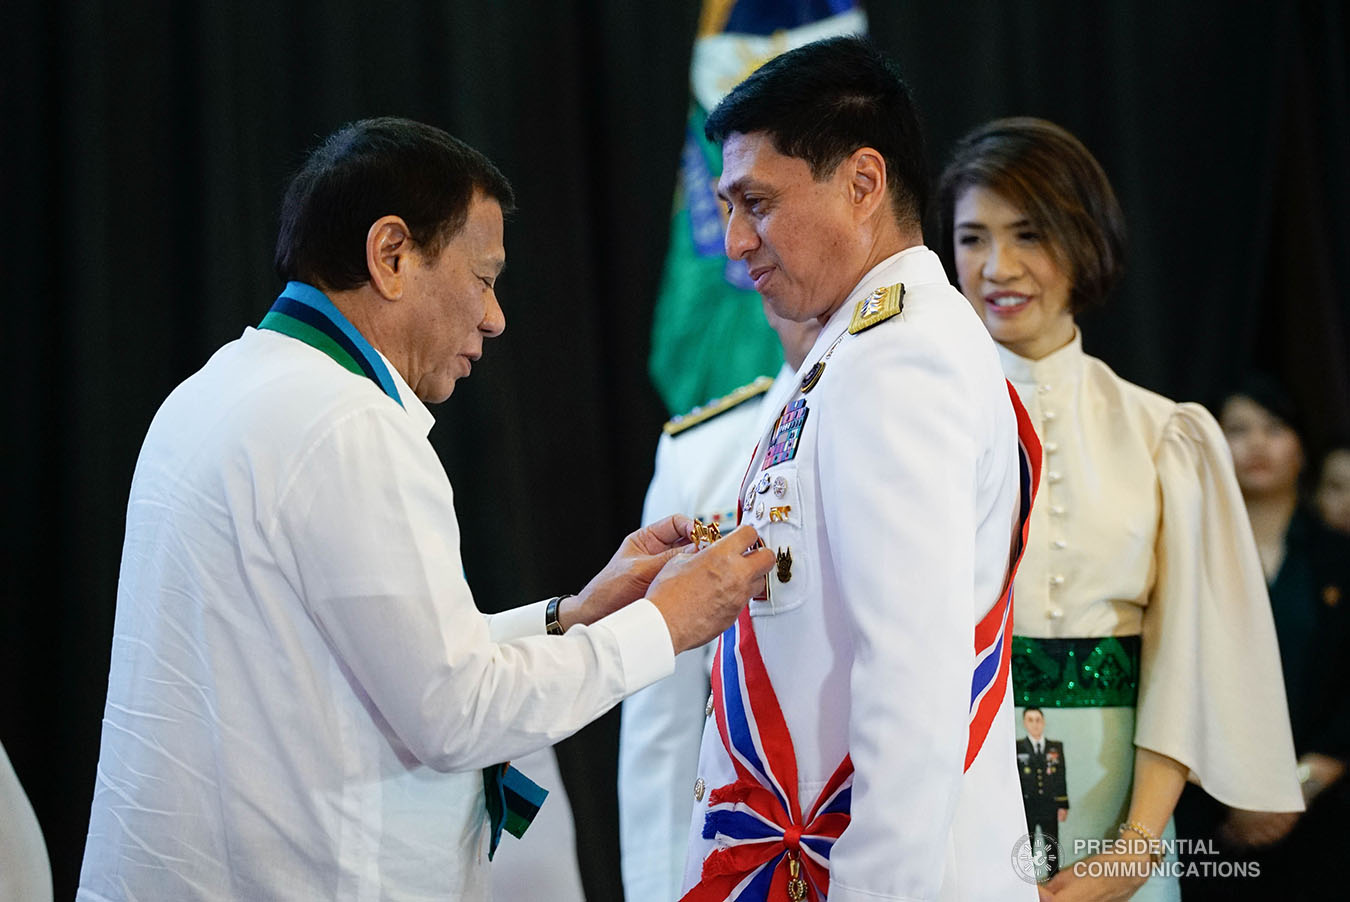 President Rodrigo Roa Duterte confers the Philippine Legion of Honor with the degree of Chief Commander on outgoing Armed Forces of the Philippines (AFP) Chief of Staff General Noel Clement during the AFP Change of Command ceremony at Camp General Emilio Aguinaldo in Quezon City on January 4, 2020. KING RODRIGUEZ/PRESIDENTIAL PHOTO